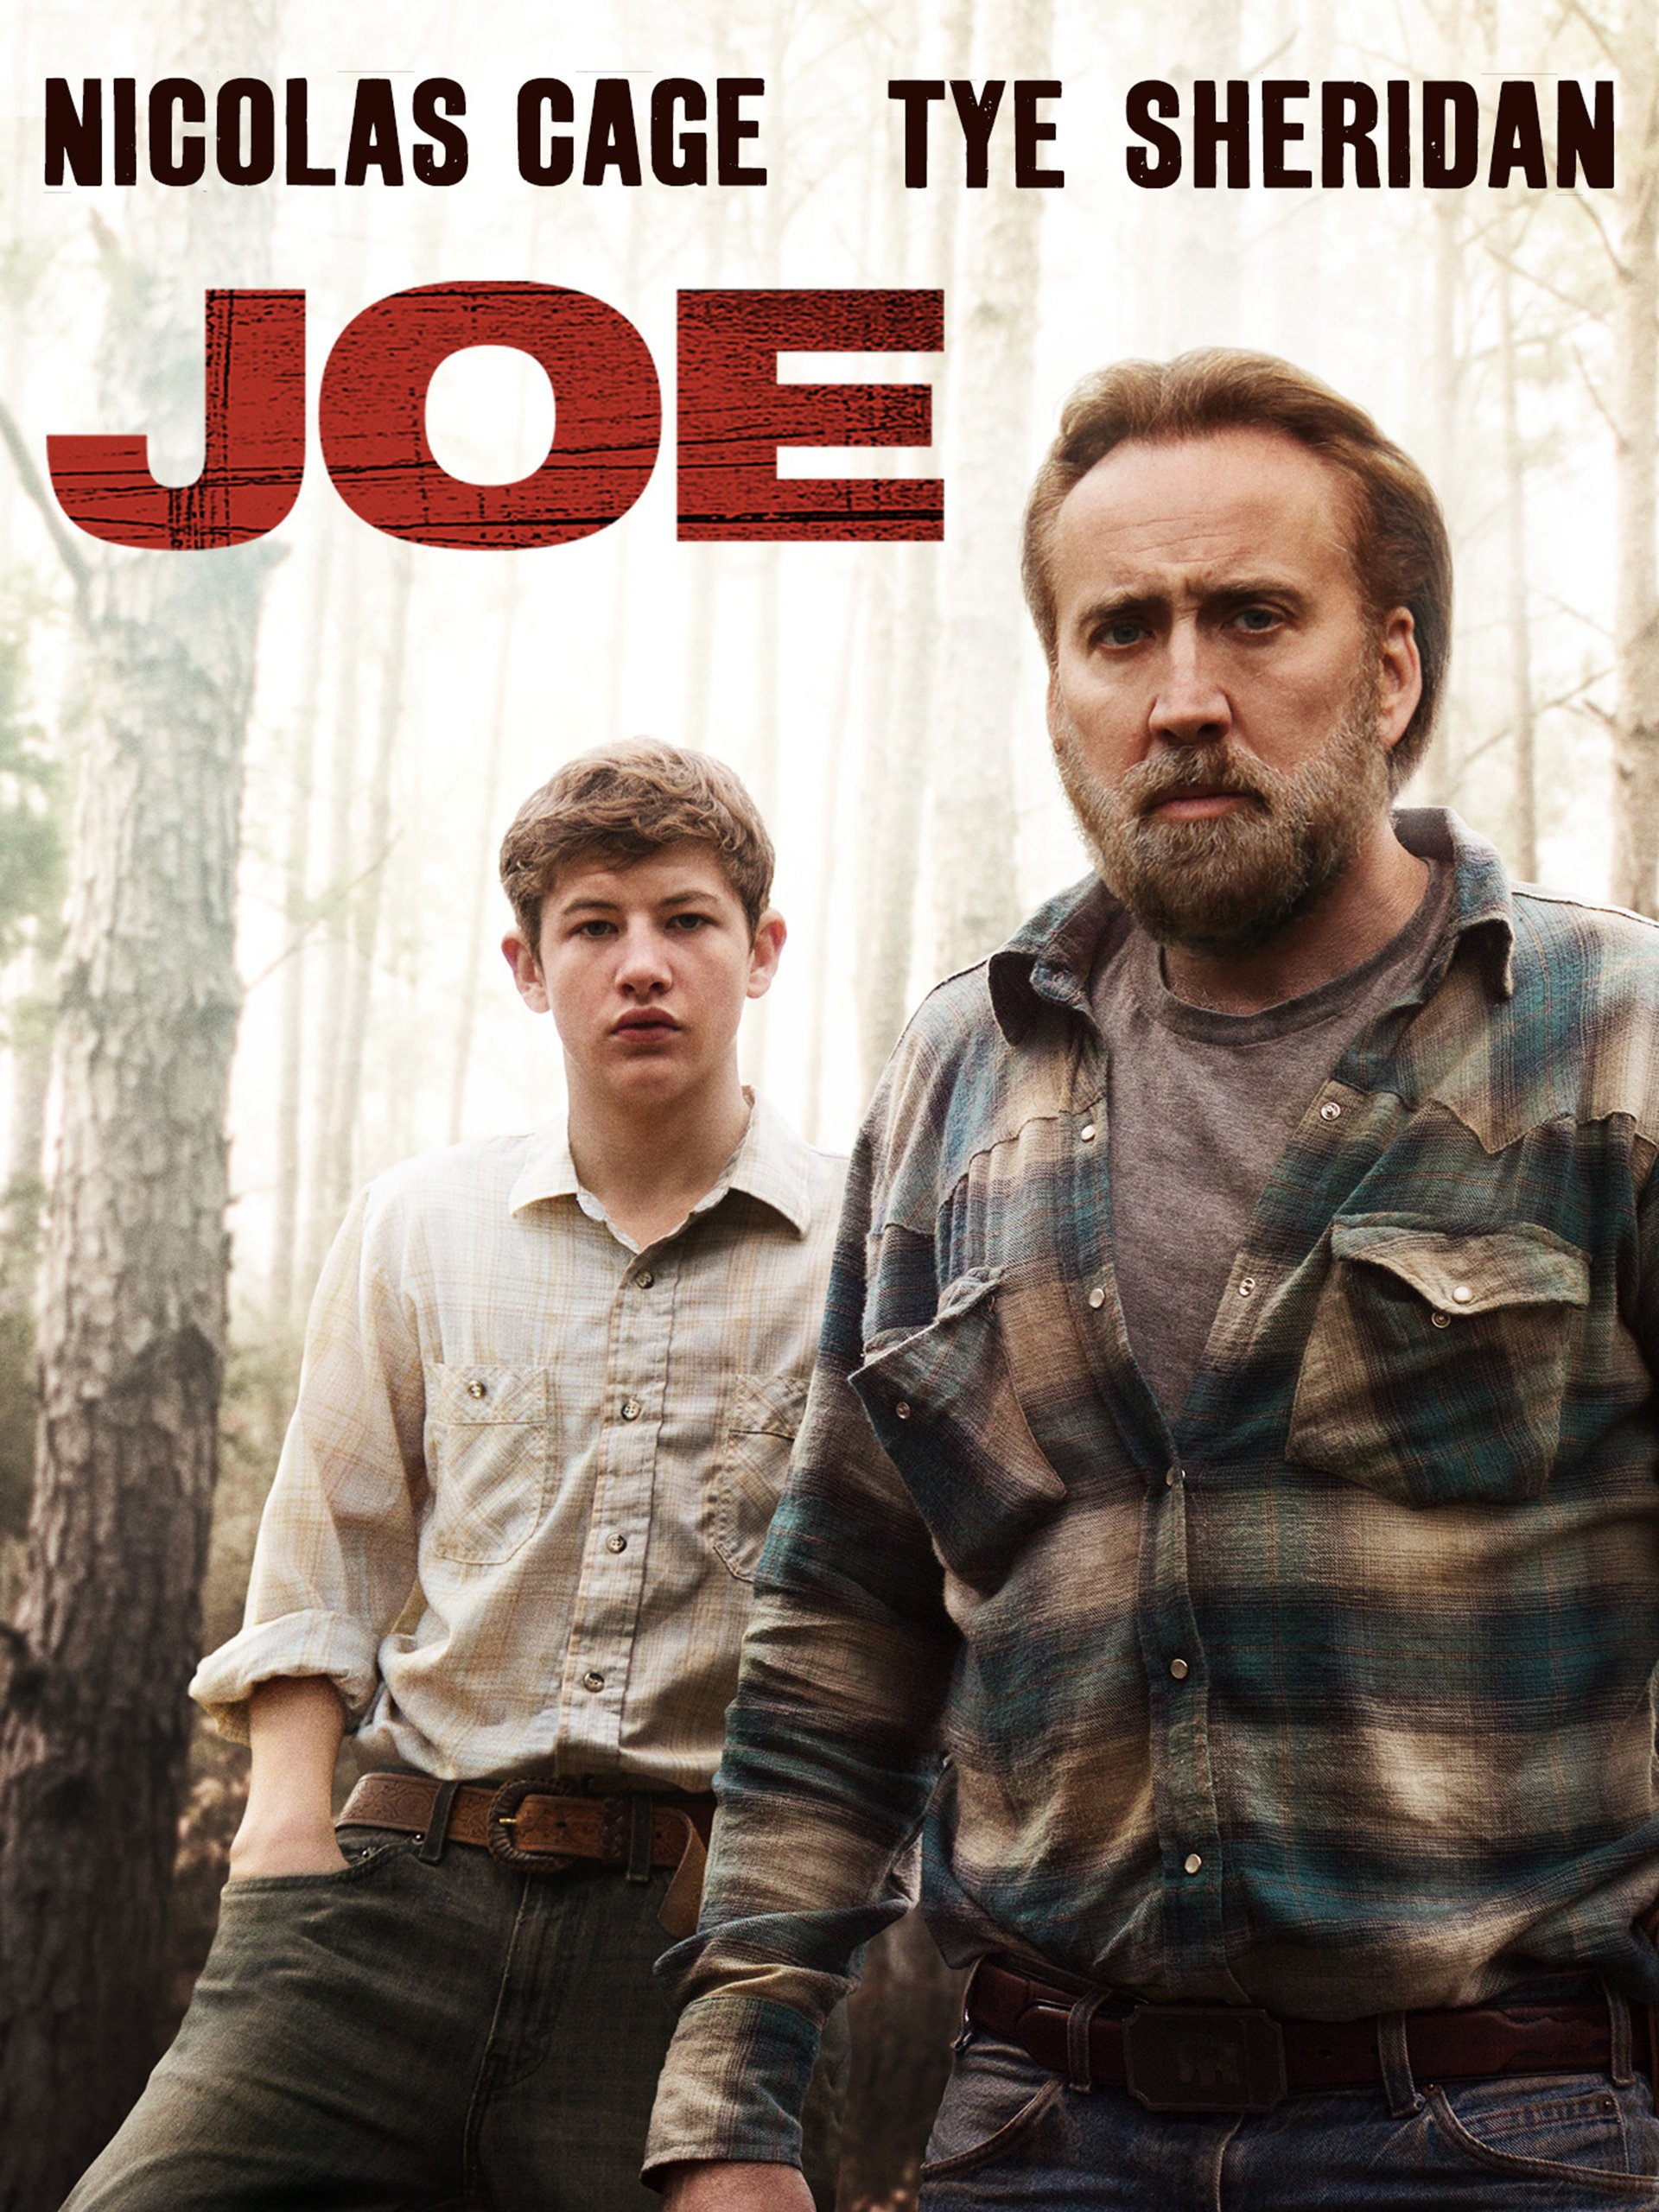 Joe (2013) - Directed by: David Gordon GreenStarring: Nicolas Cage, Tye Sheridan, Gary PoulterRated: R for Violence, Disturbing Material, Language and Some Strong Sexual ContentRunning Time: 2hTMM Score: 4 StarsSTRENGTHS: Subtle Nic Cage, Performances, Atmosphere, StoryWEAKNESSES: Some Directing/Writing Choices, Unnecessary Animal Violence